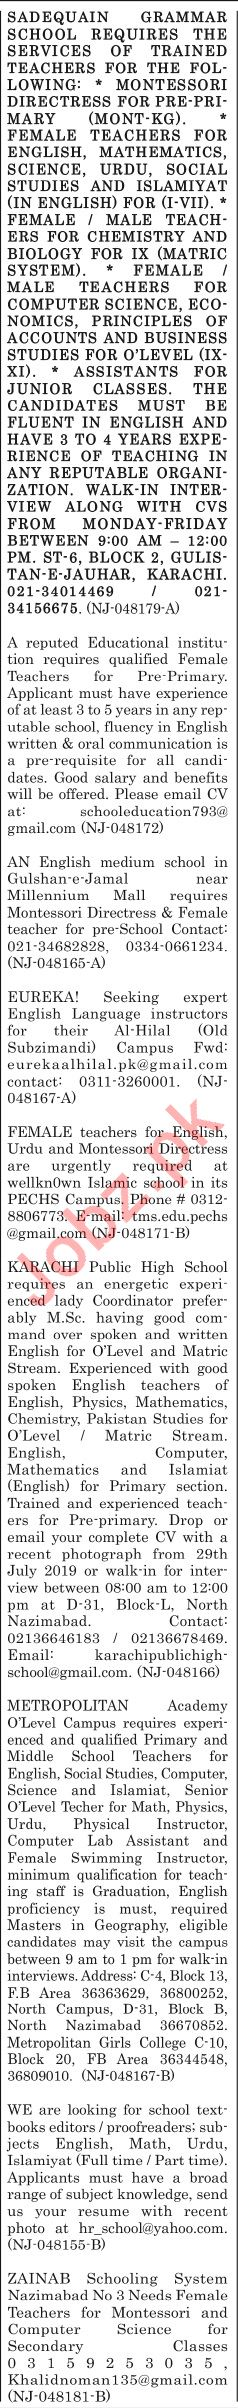 The News Sunday Classified Ads 1st Sep 2019 Teaching Staff